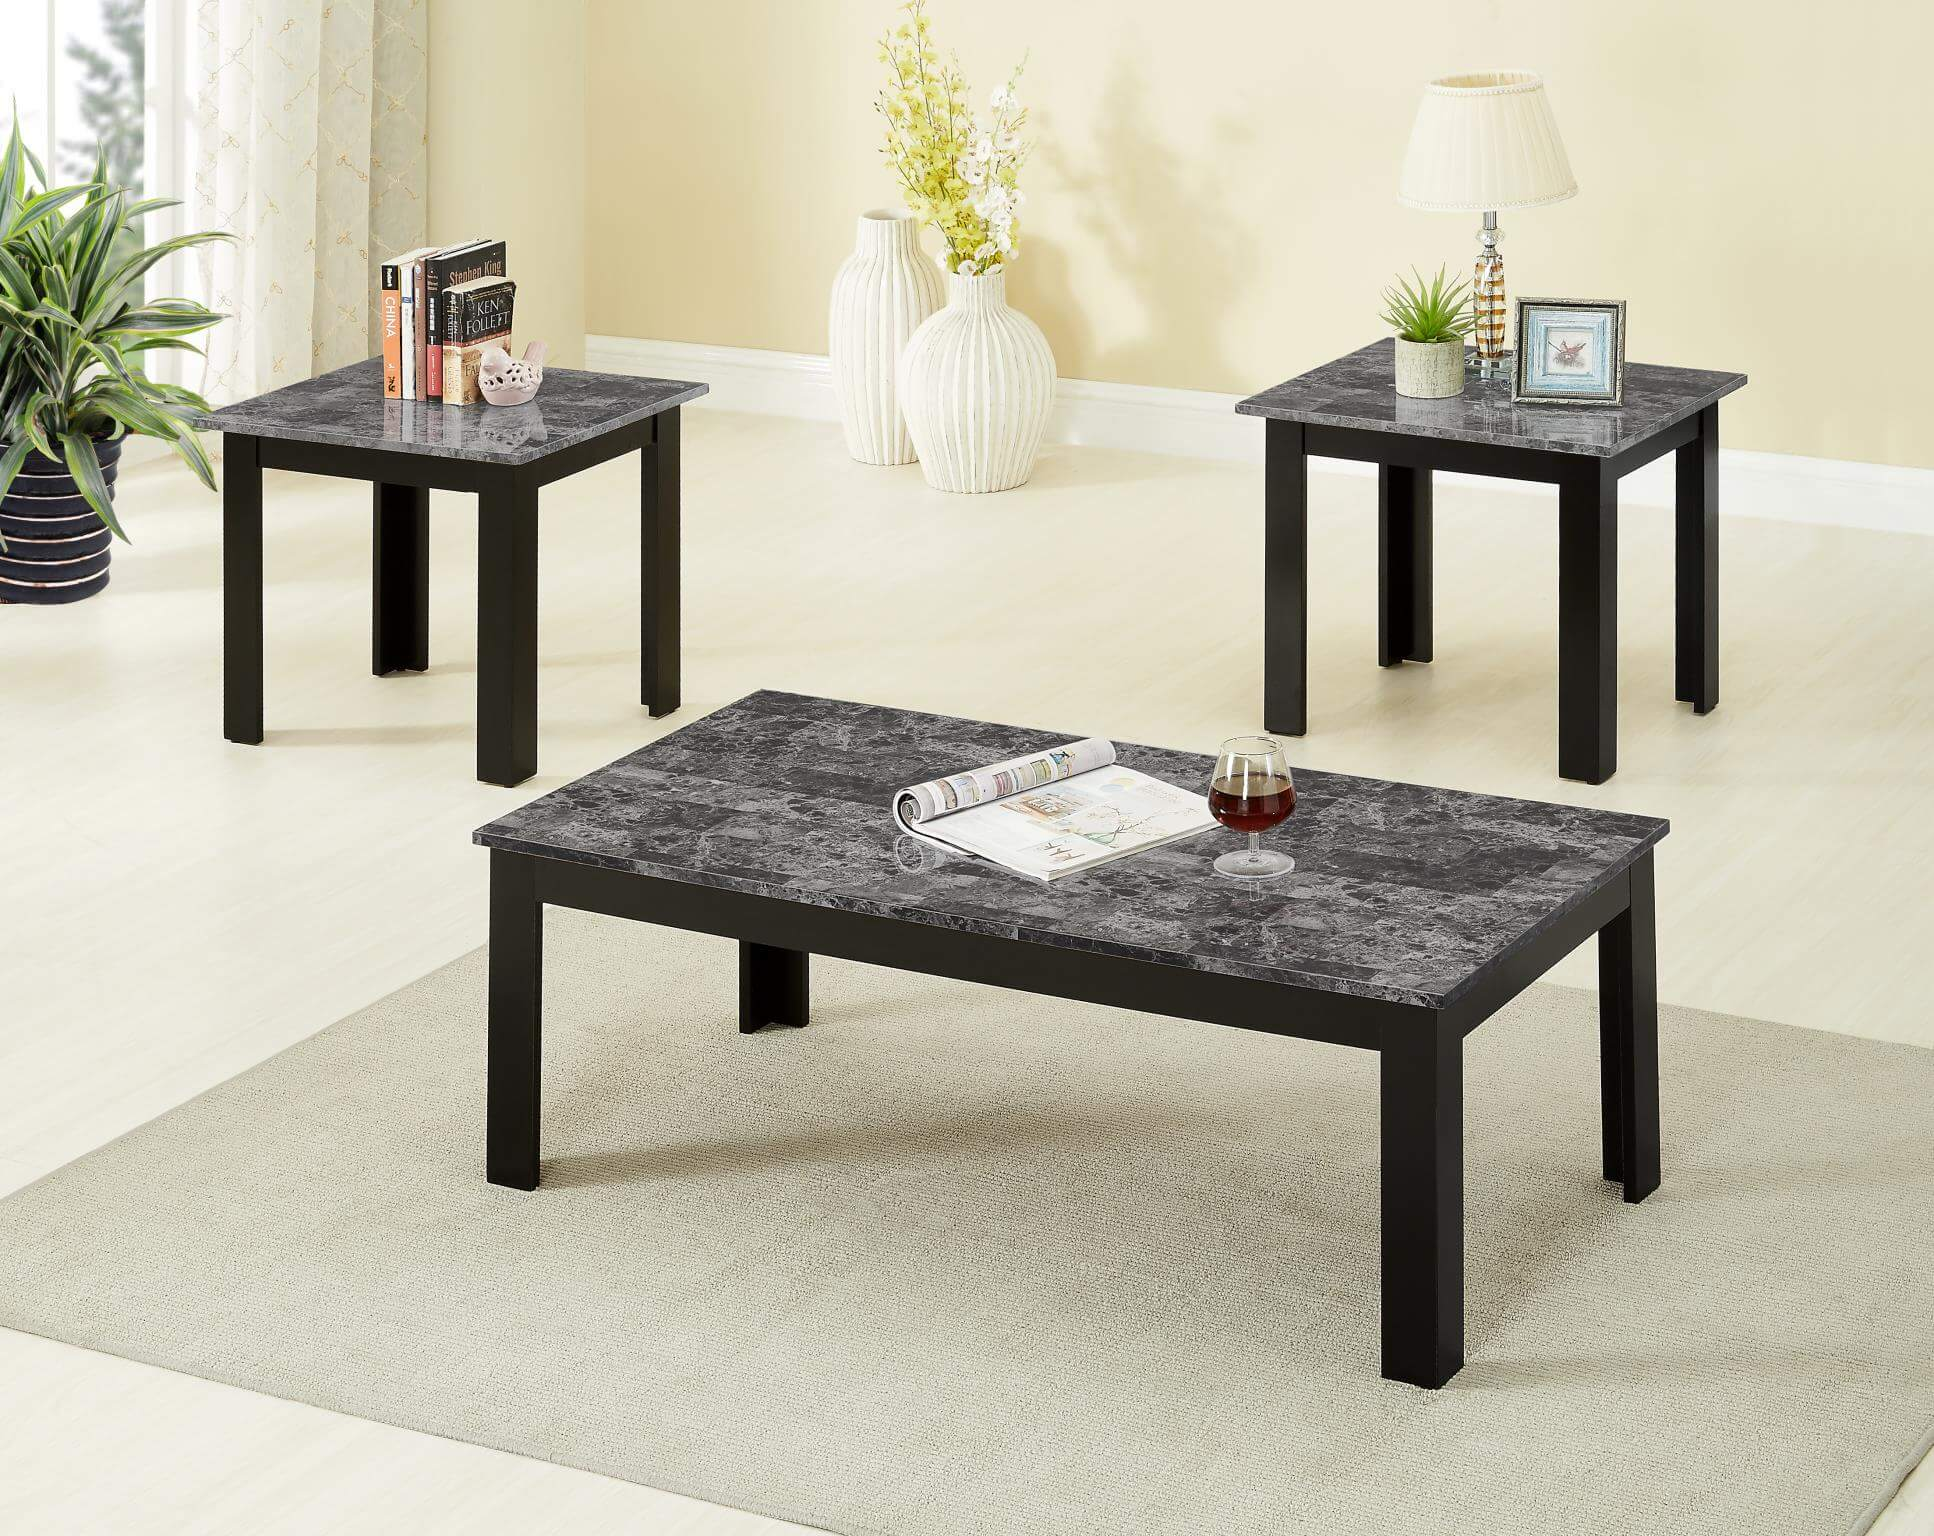 piece black faux marble coffee and end table set tables global trading bernhardt used furniture pull out kmart coupons for patio really nice stickley entertainment center diy dog